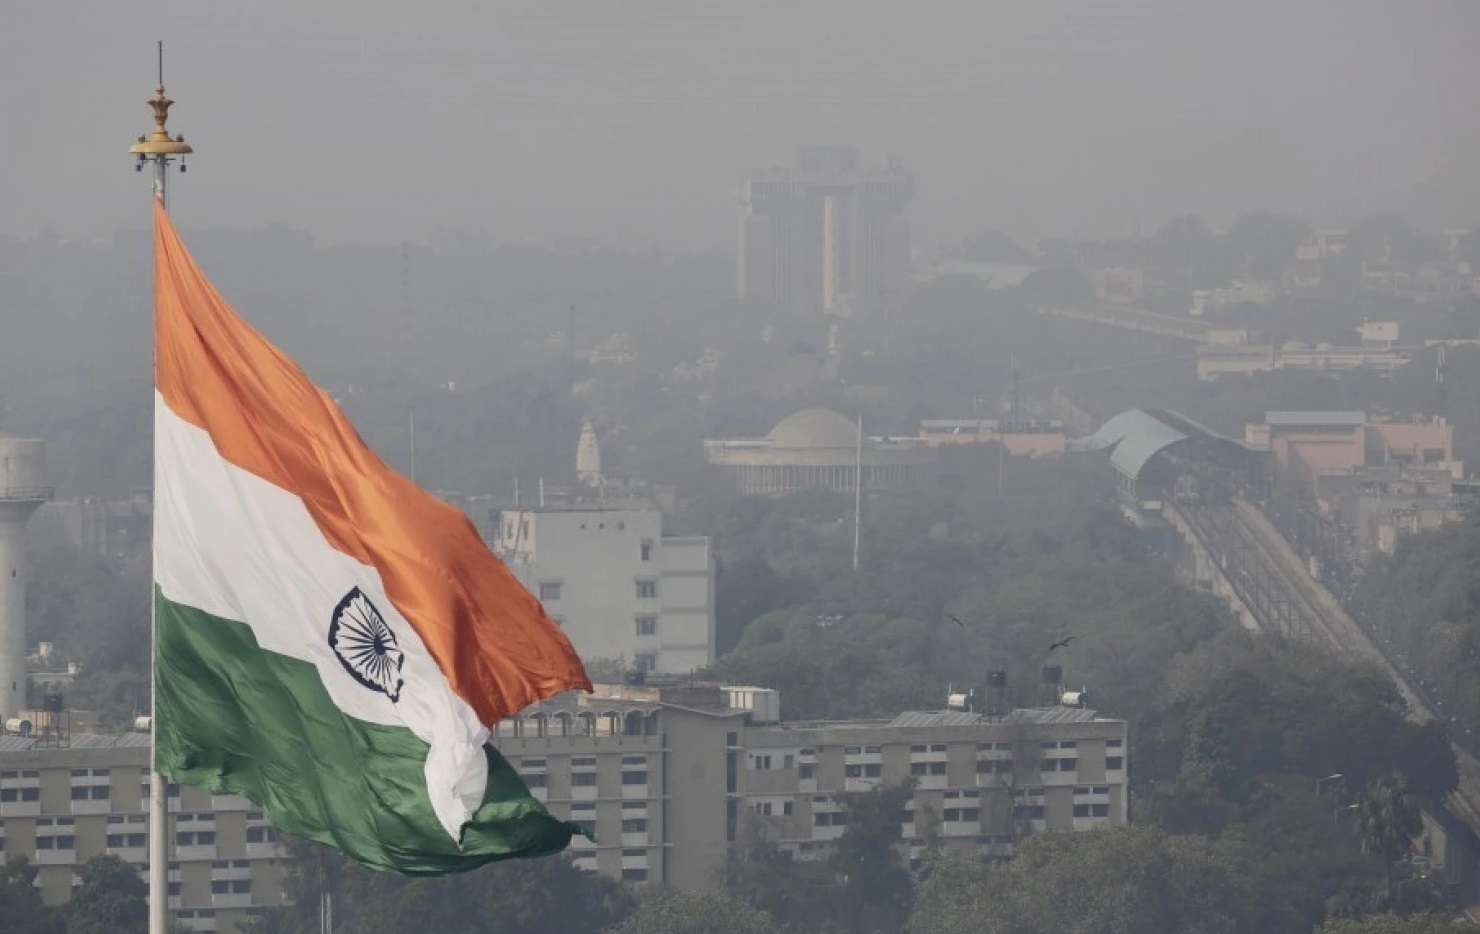 An Indian national flag flies as a thick layer of smog envelops the city skyline after Diwali festival, in New Delhi, India. New Delhi is imposing new rules to reduce its notoriously snarled traffic and fight extreme air pollution that has earned India's capital the title of world's most polluted city.